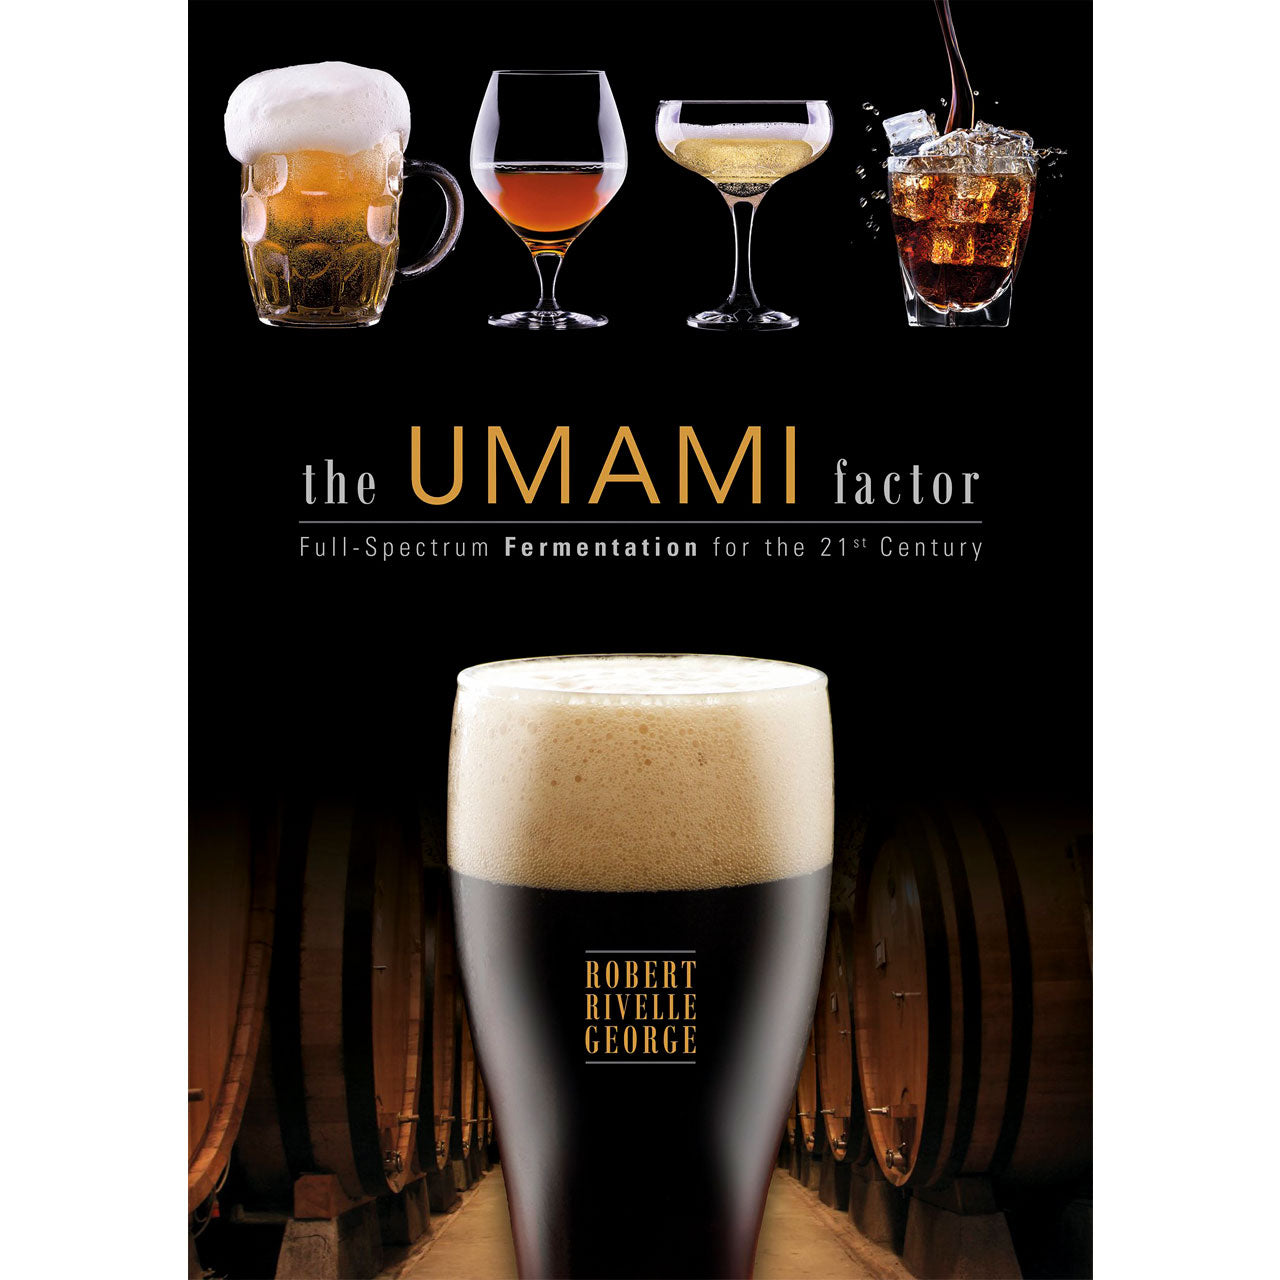 The Umami Factor : Full-Spectrum Fermentation for the 21st Century by Robert George